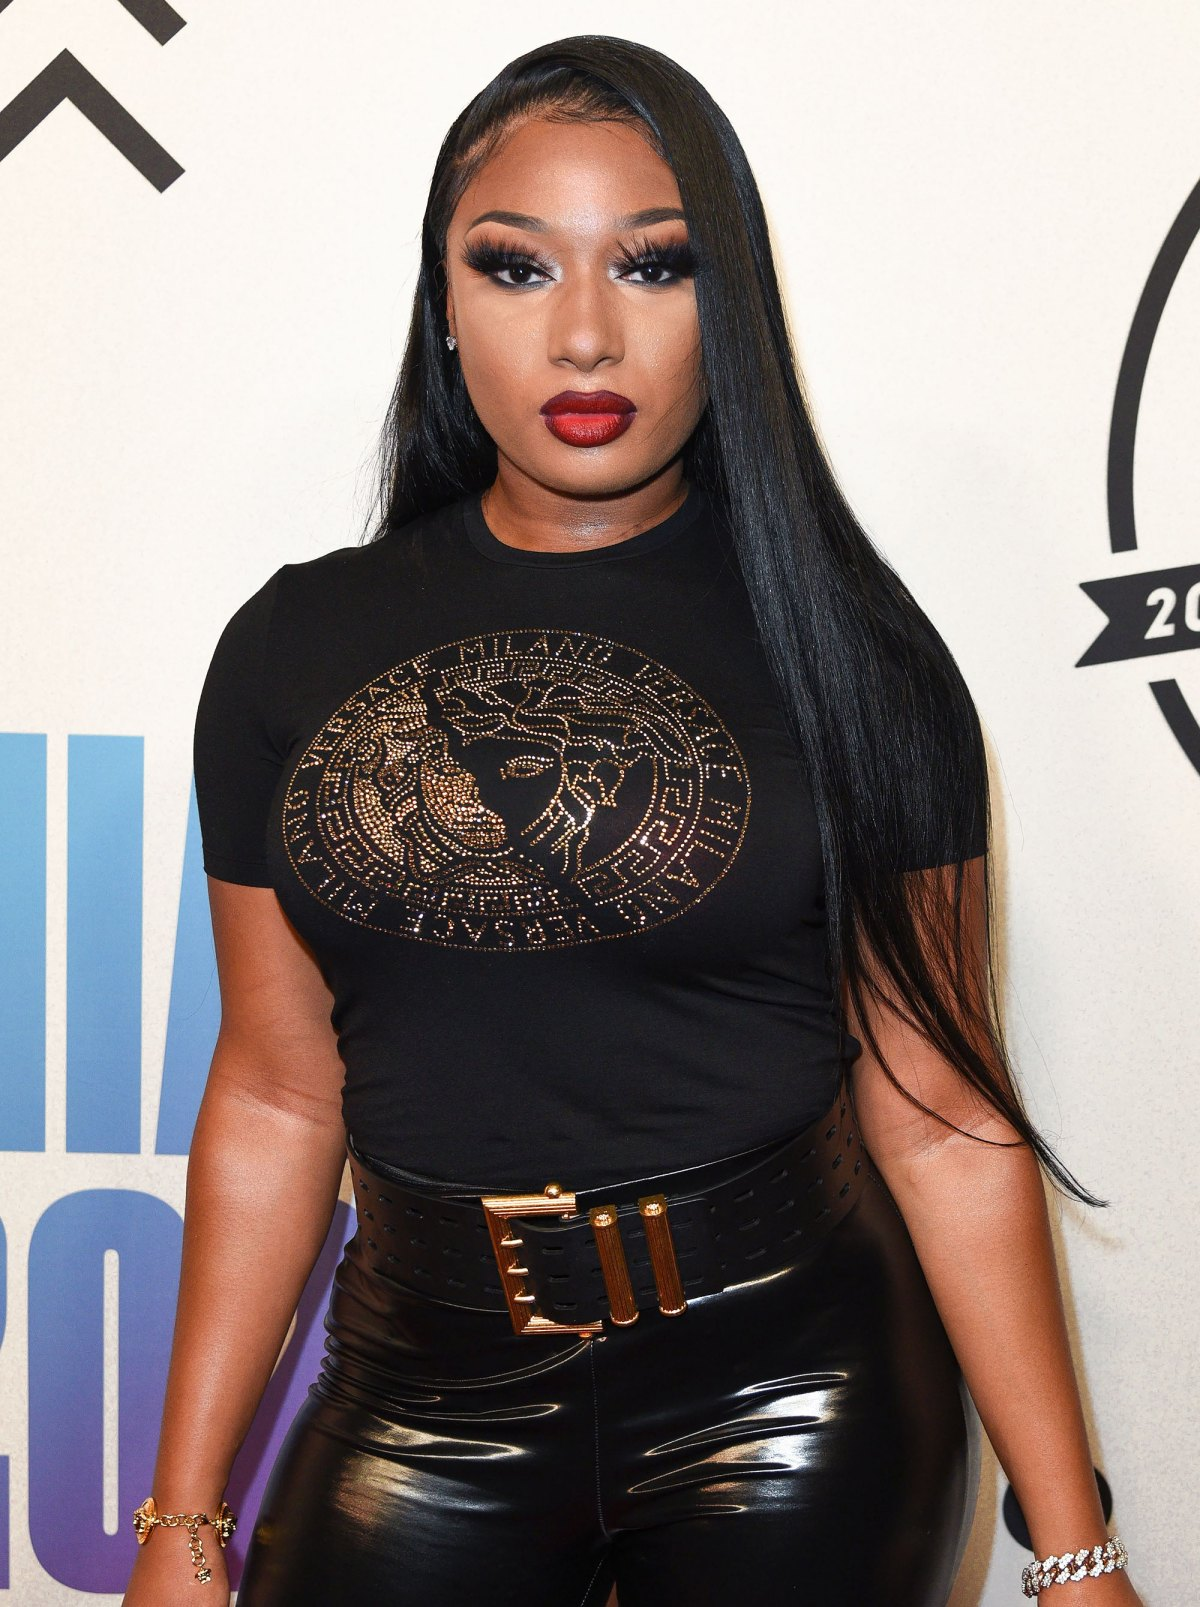 VMAs 2020: Megan Thee Stallion Makes Appearance After Shooting